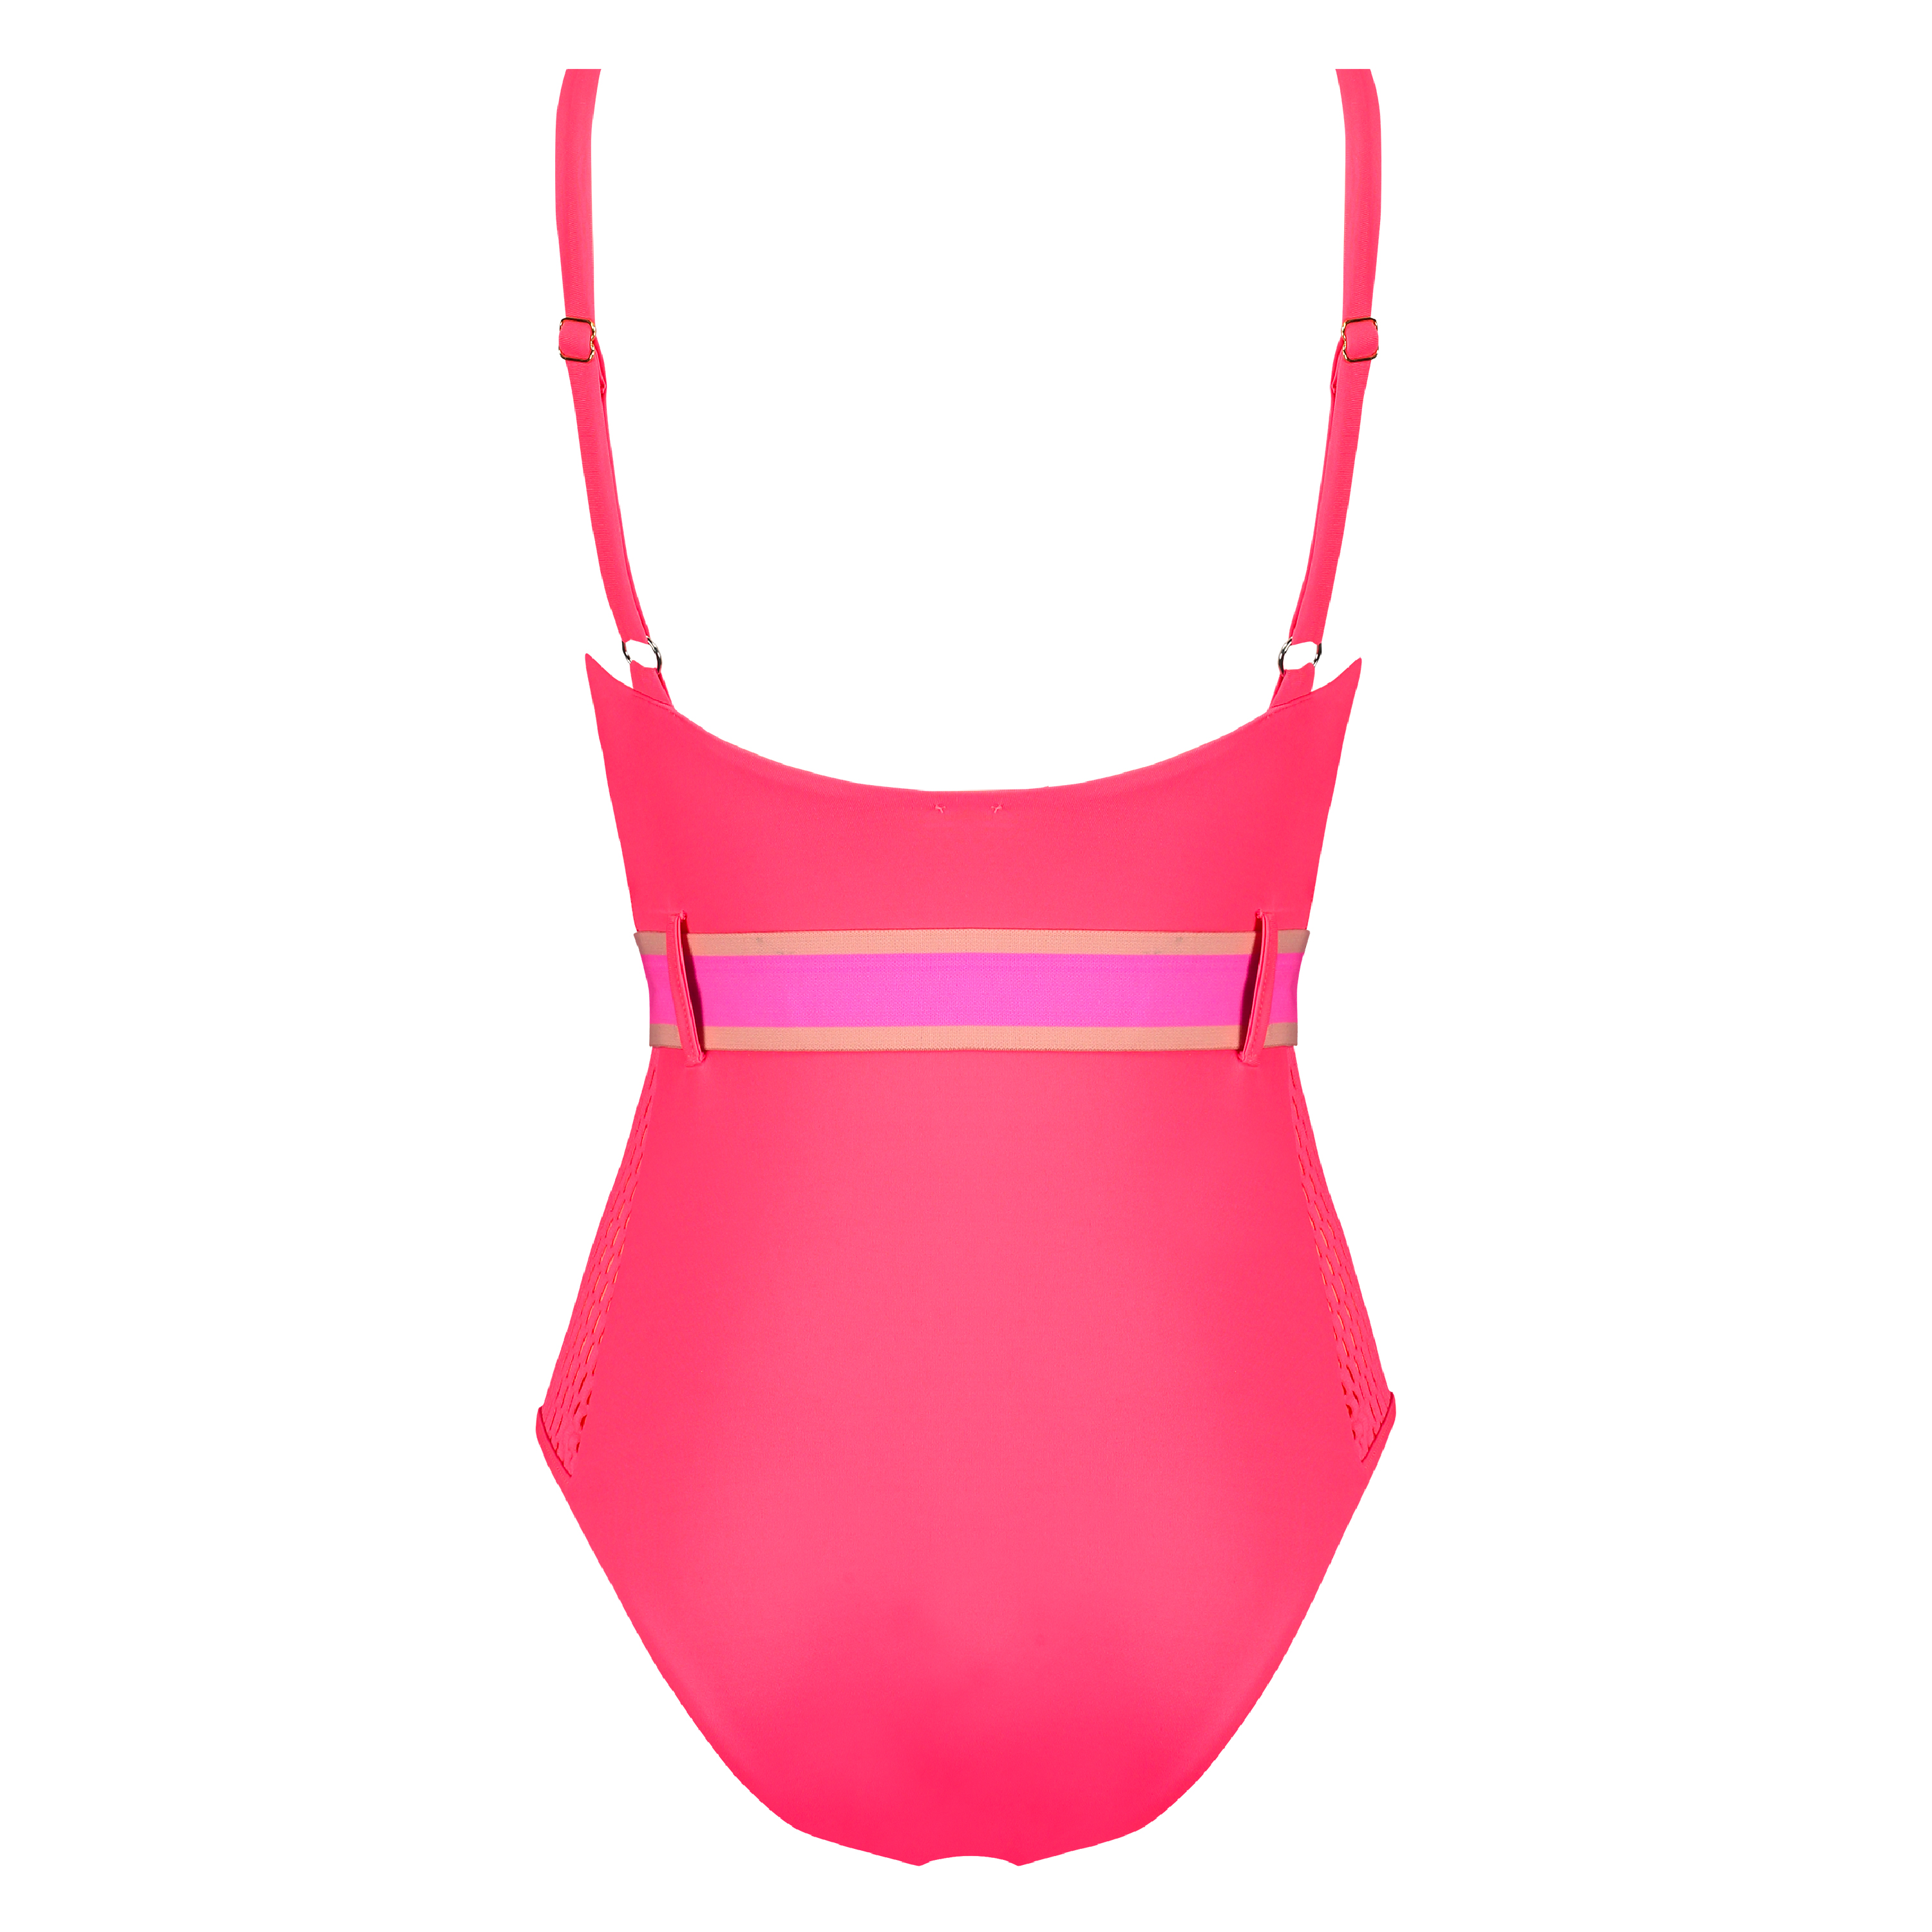 Badpak Flash Dance, Roze, main